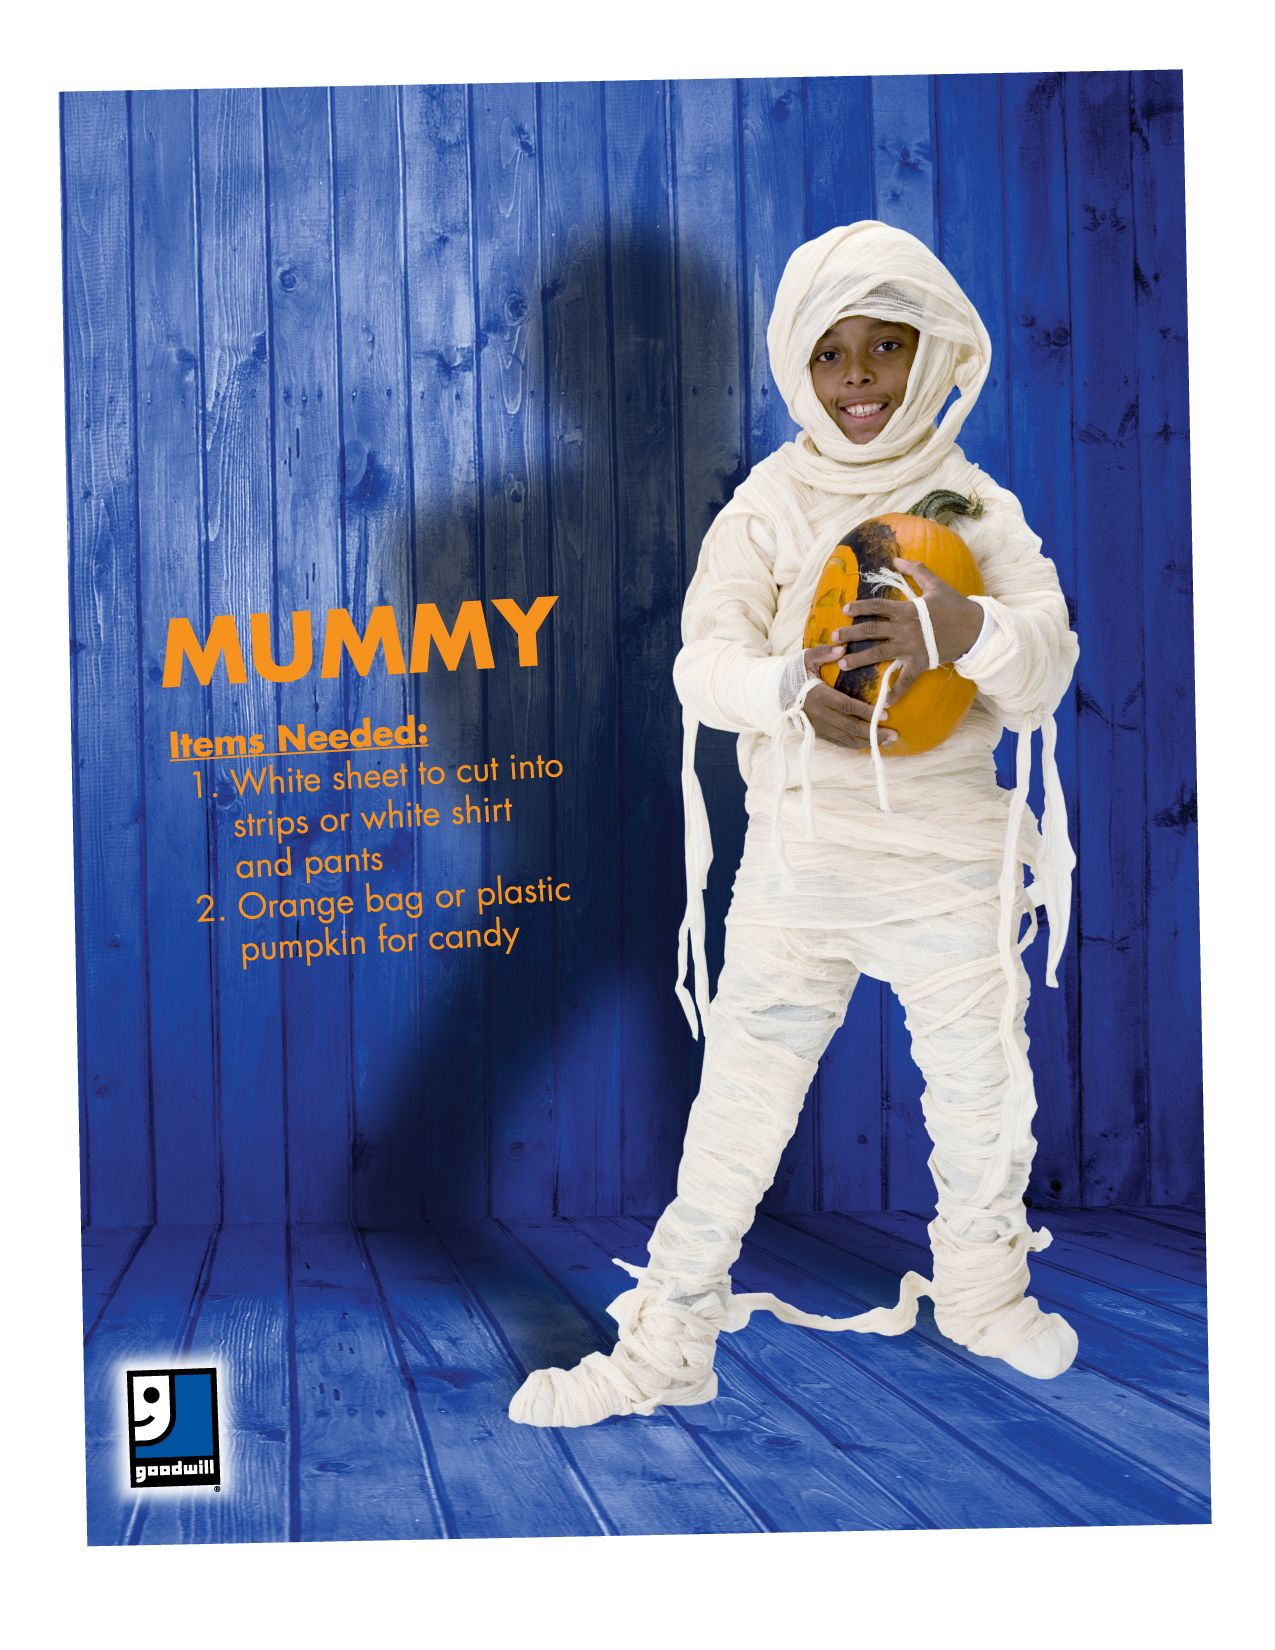 Are you ready for Halloween? A mummy is an easy DIY